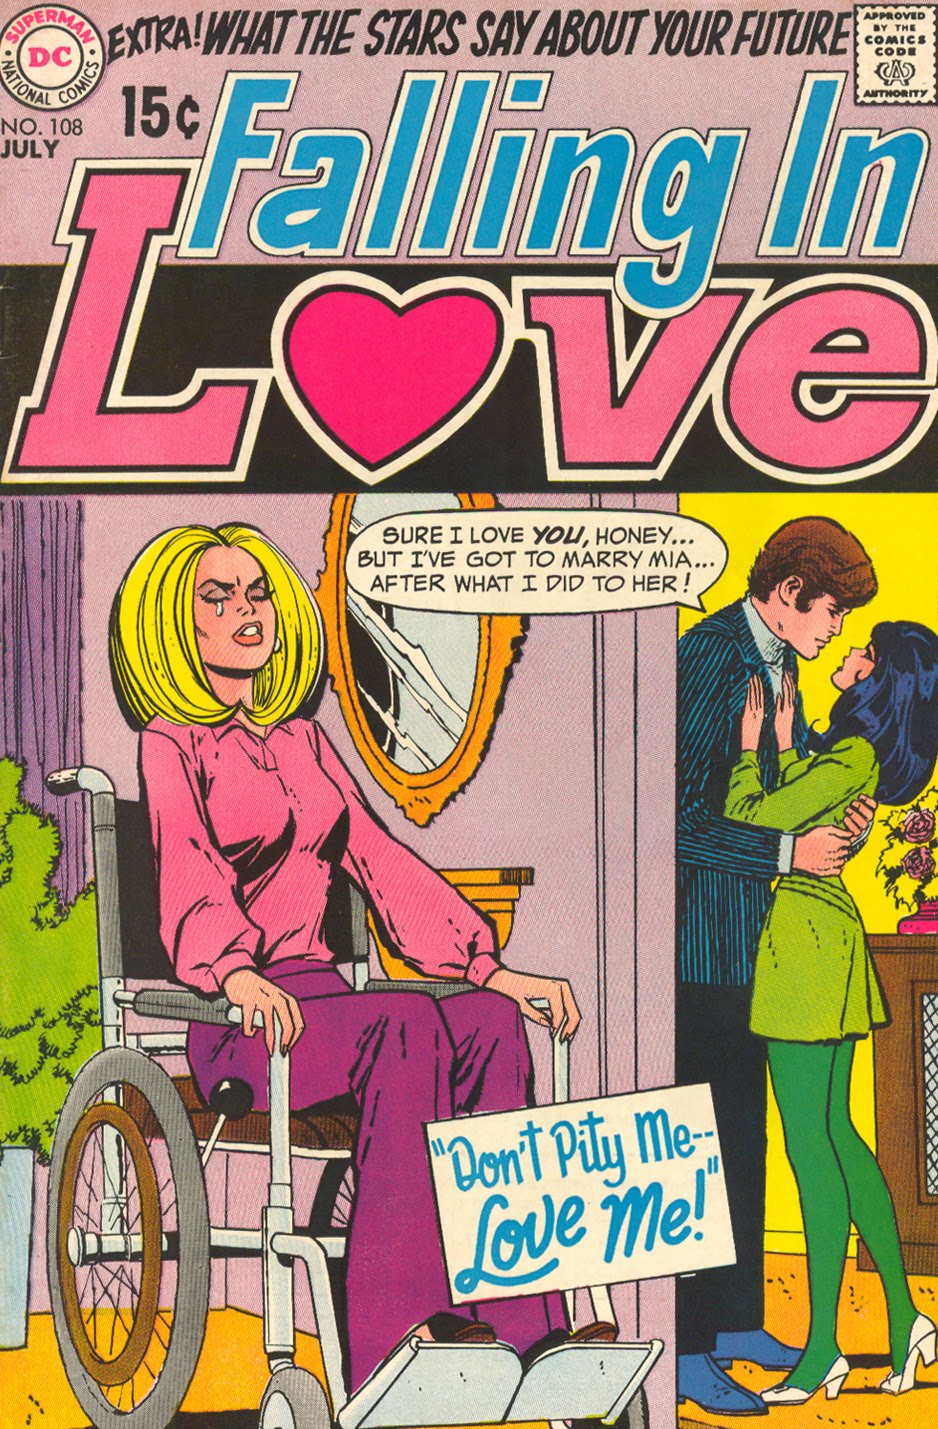 """DIAGNOSIS: Paralysis from car accident """"Don't Pity Me -- Love Me!""""  Falling in Love  #108 (July 1969) Cover pencils by Ric Estrada, inks by Vince Colletta"""